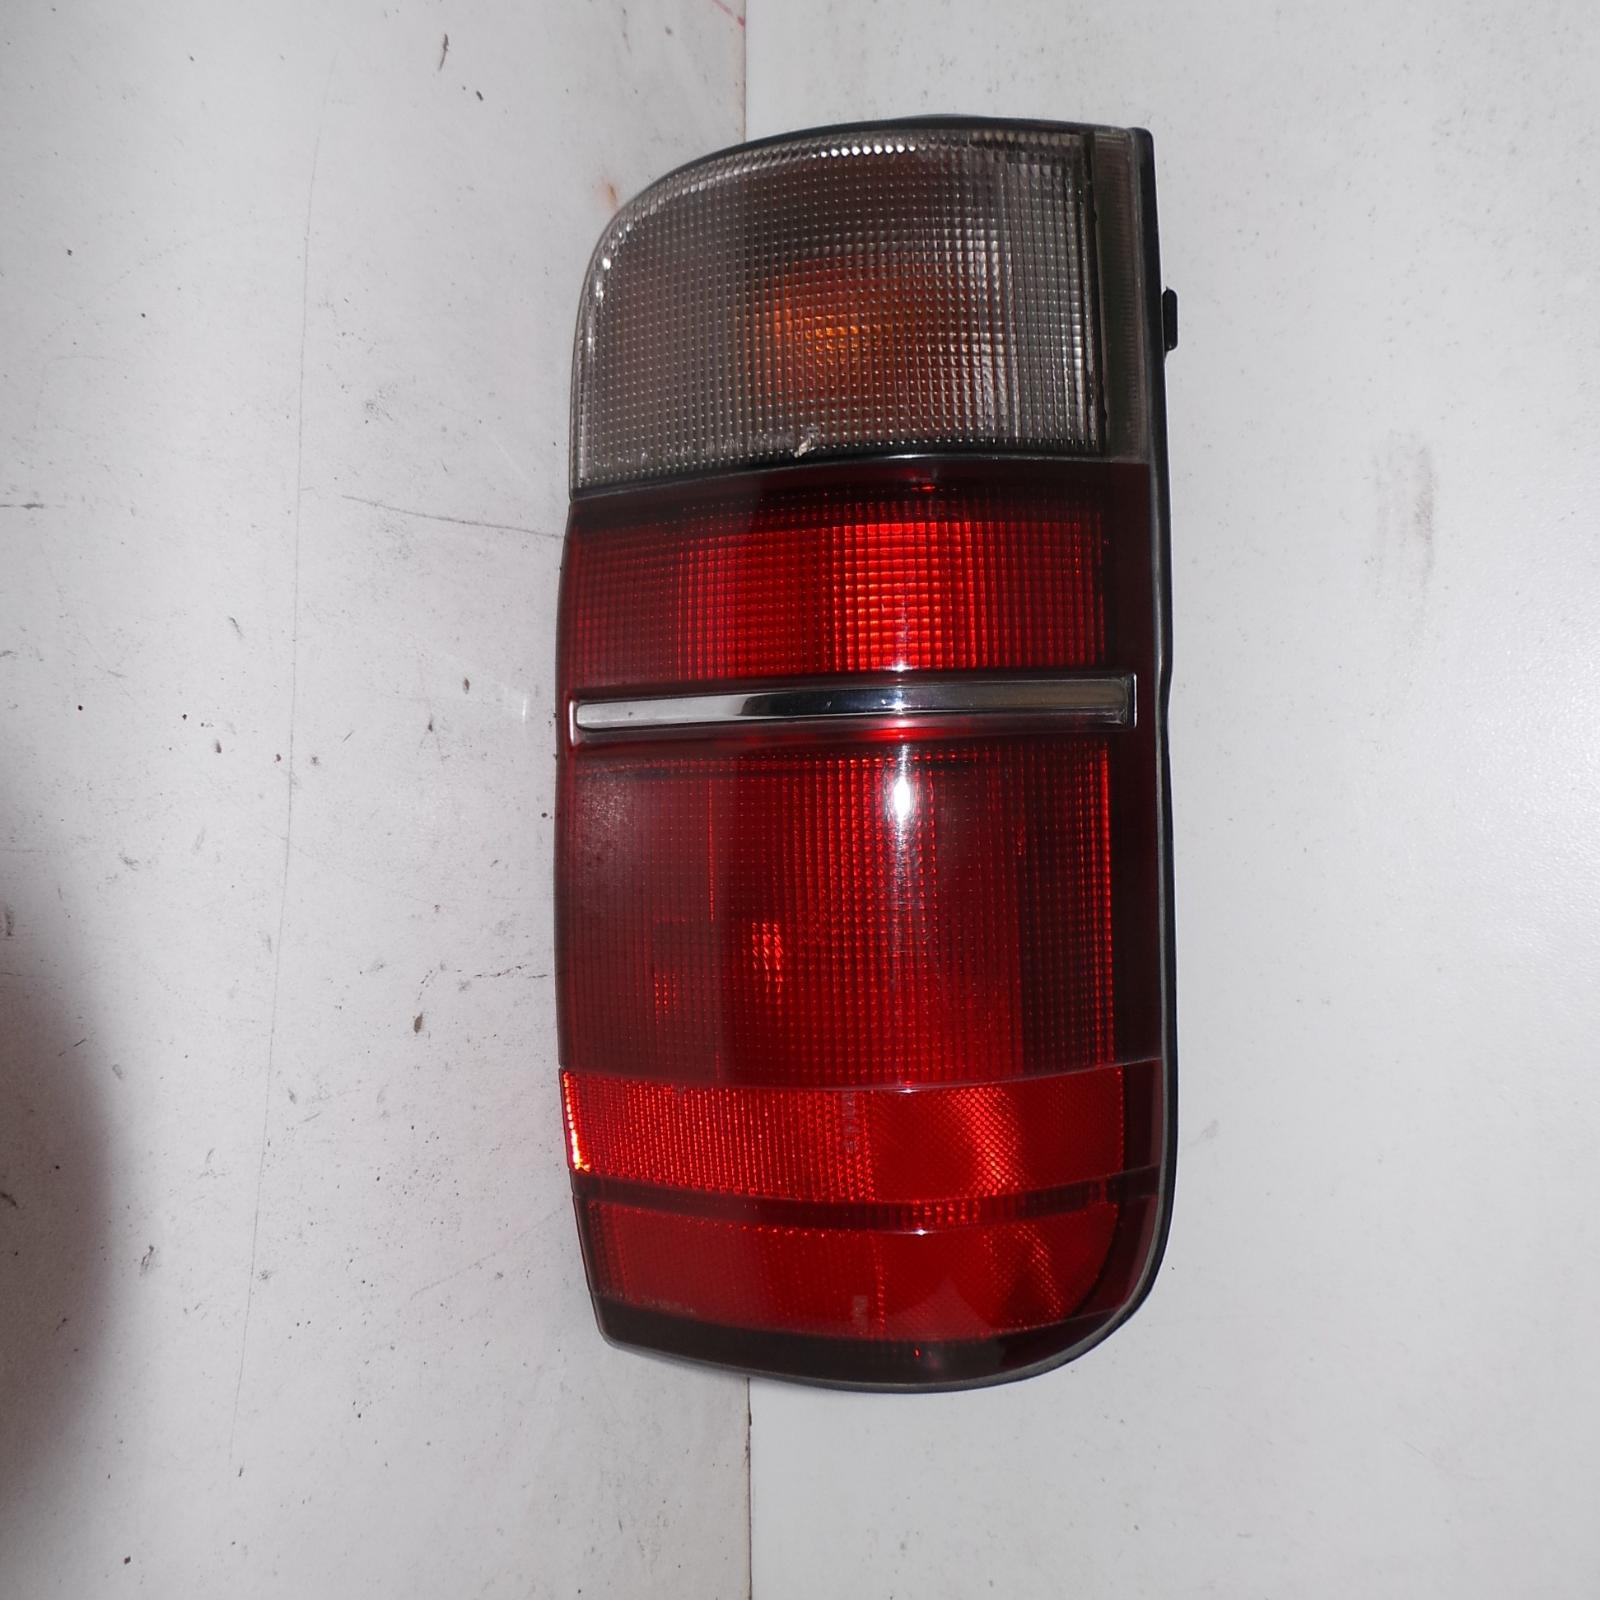 TOYOTA HIACE, Right Taillight, KZH#, SUPER CUSTOM, LENS# 26-46, 94-97 (NZ ONLY)